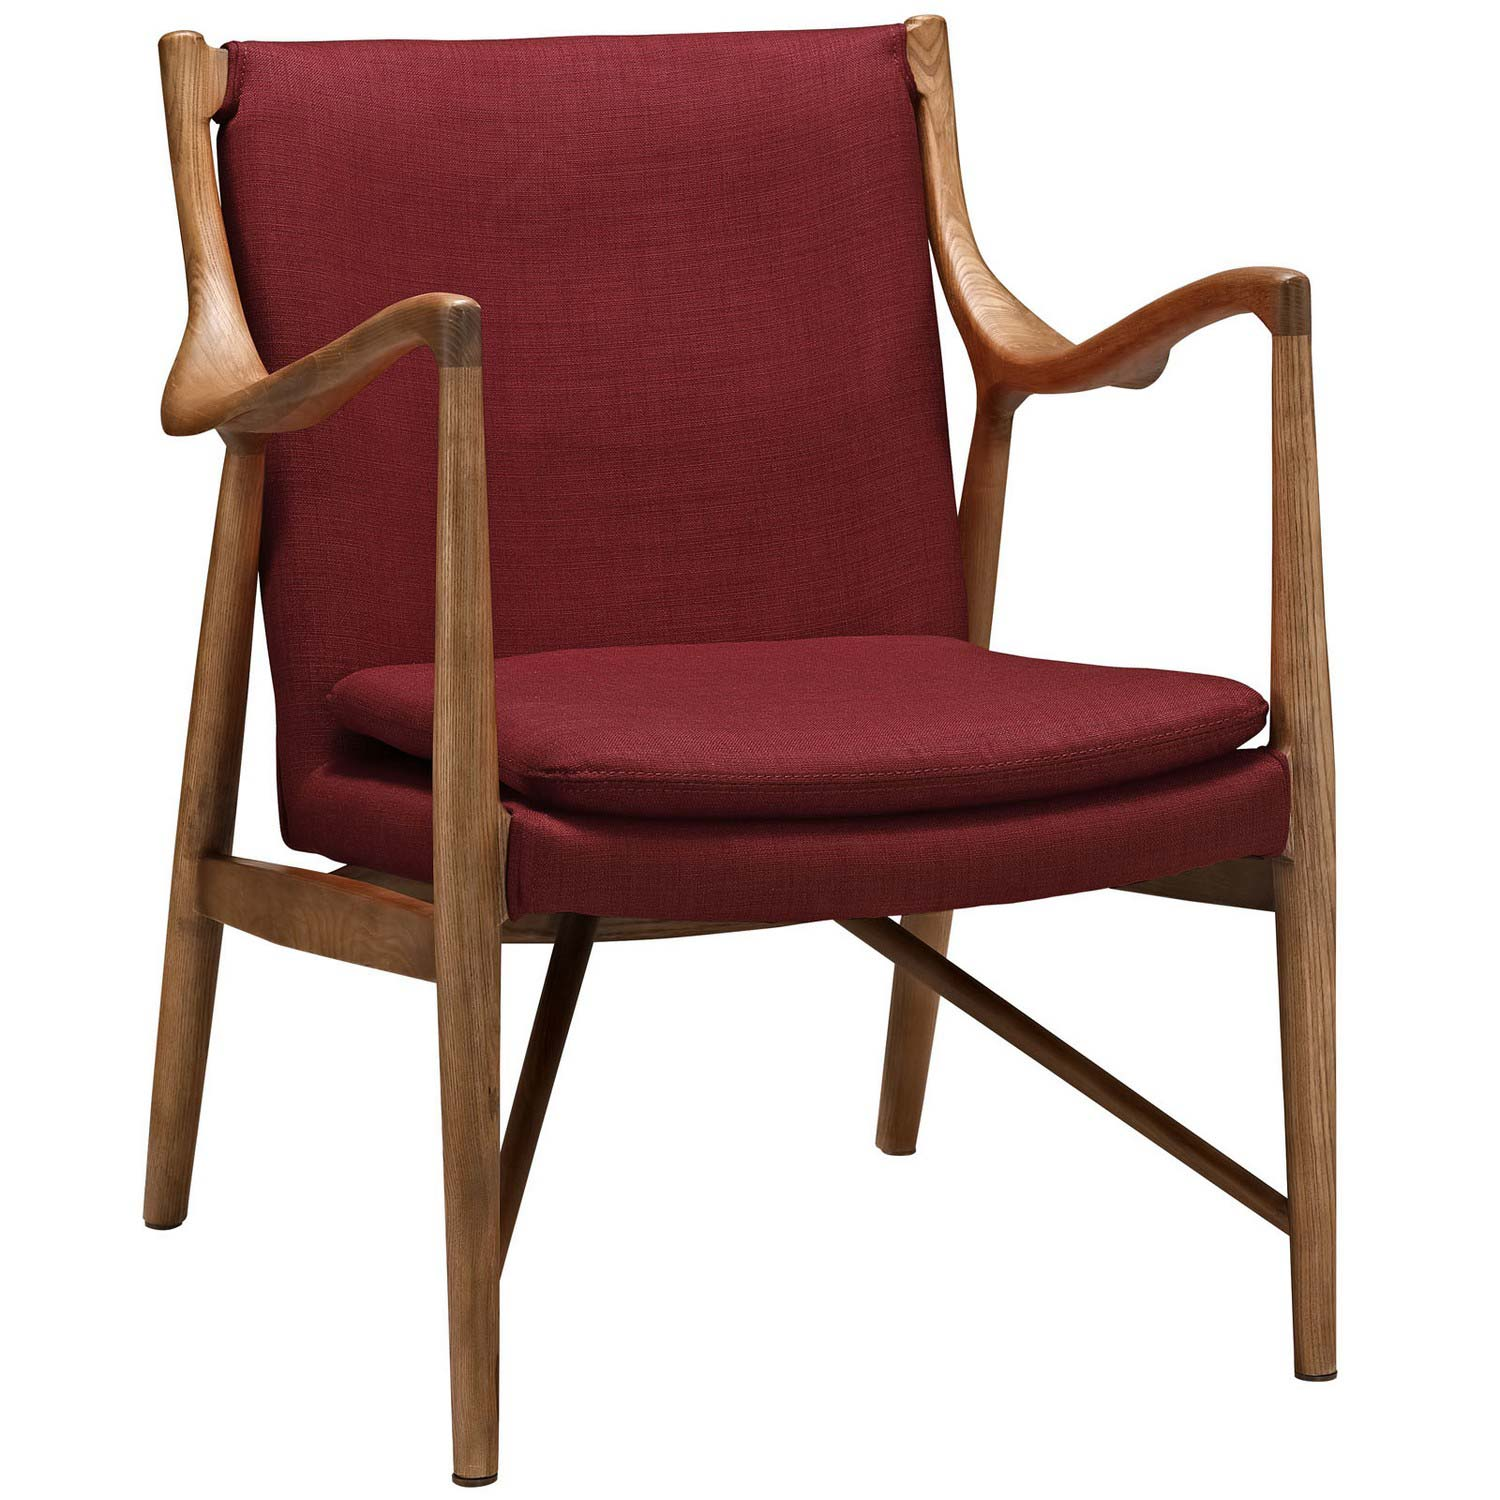 Modway Makeshift Upholstered Lounge Chair - Maple Red